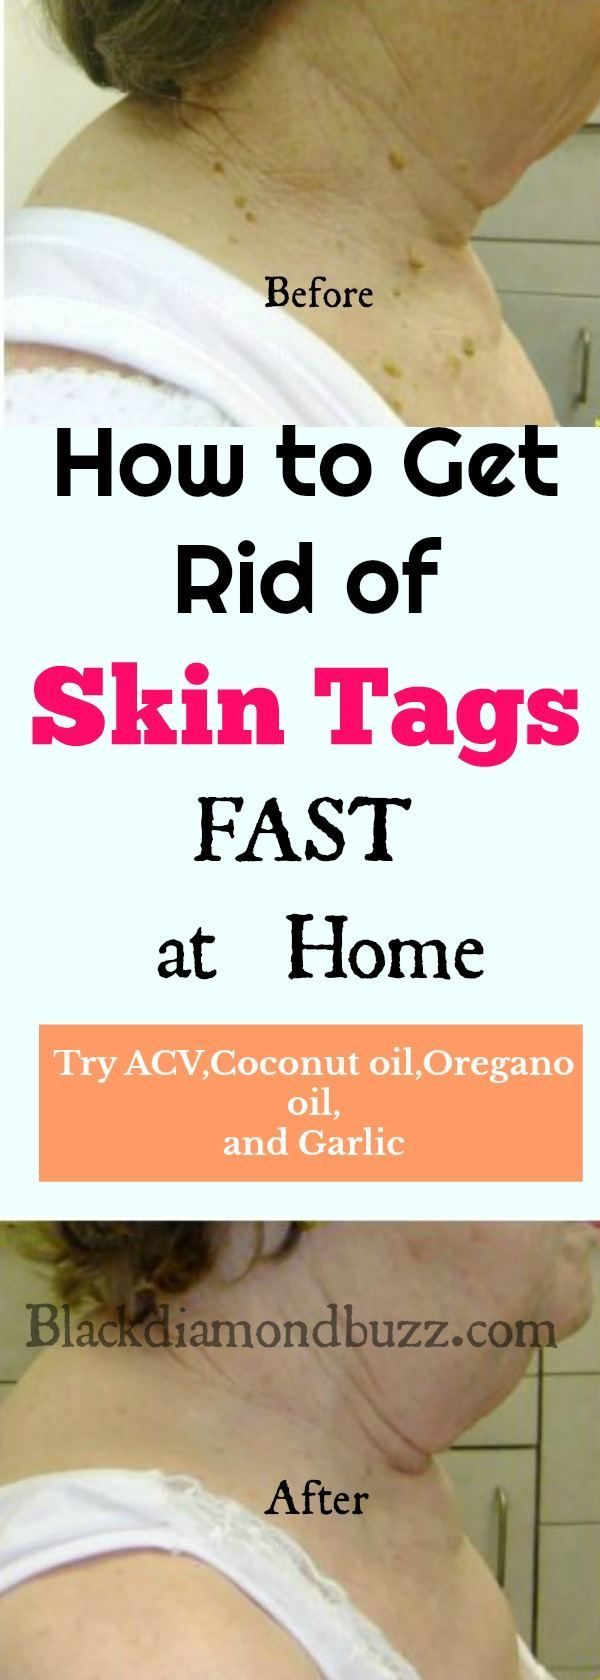 How to Remove Skin Tags Fast : Home Remedies and Causes of Skin Tags   How to Remove Skin Tags Fast: Home Remedies and Causes of Skin Tags: Ever wondered how to remove skin tags? Skin tags are small growths of skin that appear in various parts of your body, due to friction, excessive body weight, or even due to genetic issues, it can also cause by insulin resistance or type 2 diabetes. Active ingredients - apple cider vinegar, garlic, tea tree oil, oregano oil and coconut oil